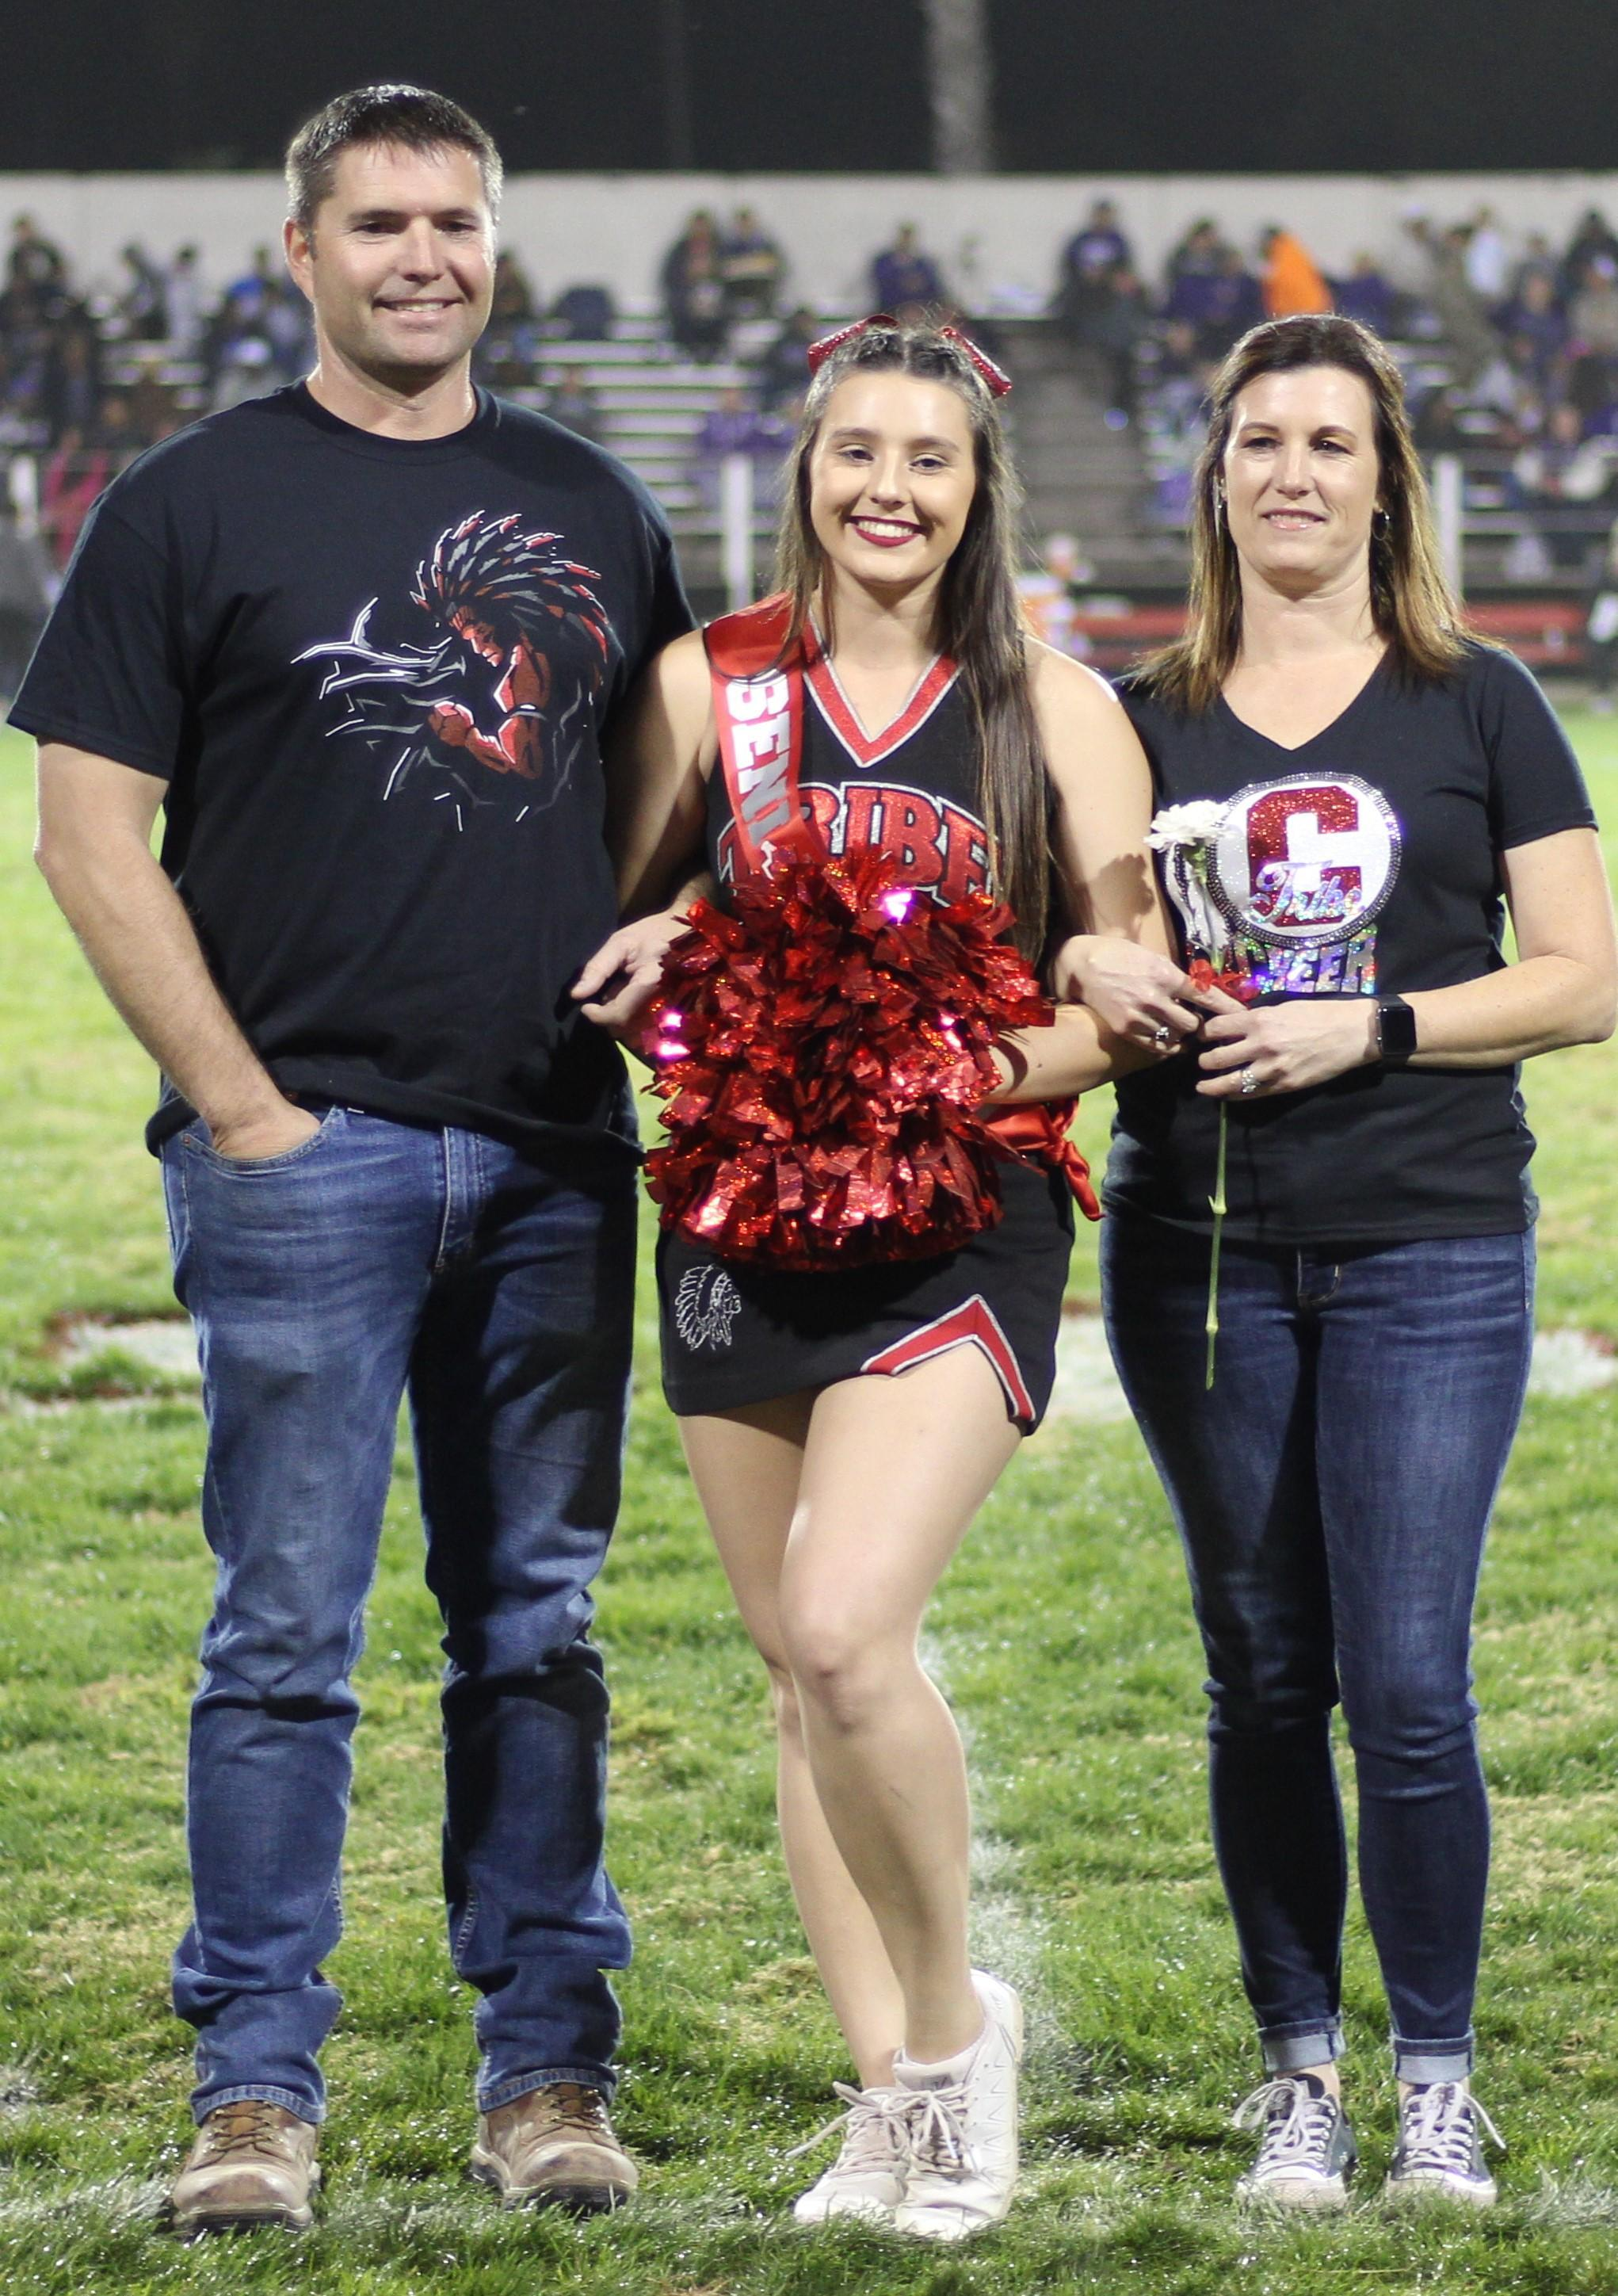 Senior cheerleader Grace Sheppard and her escorts.